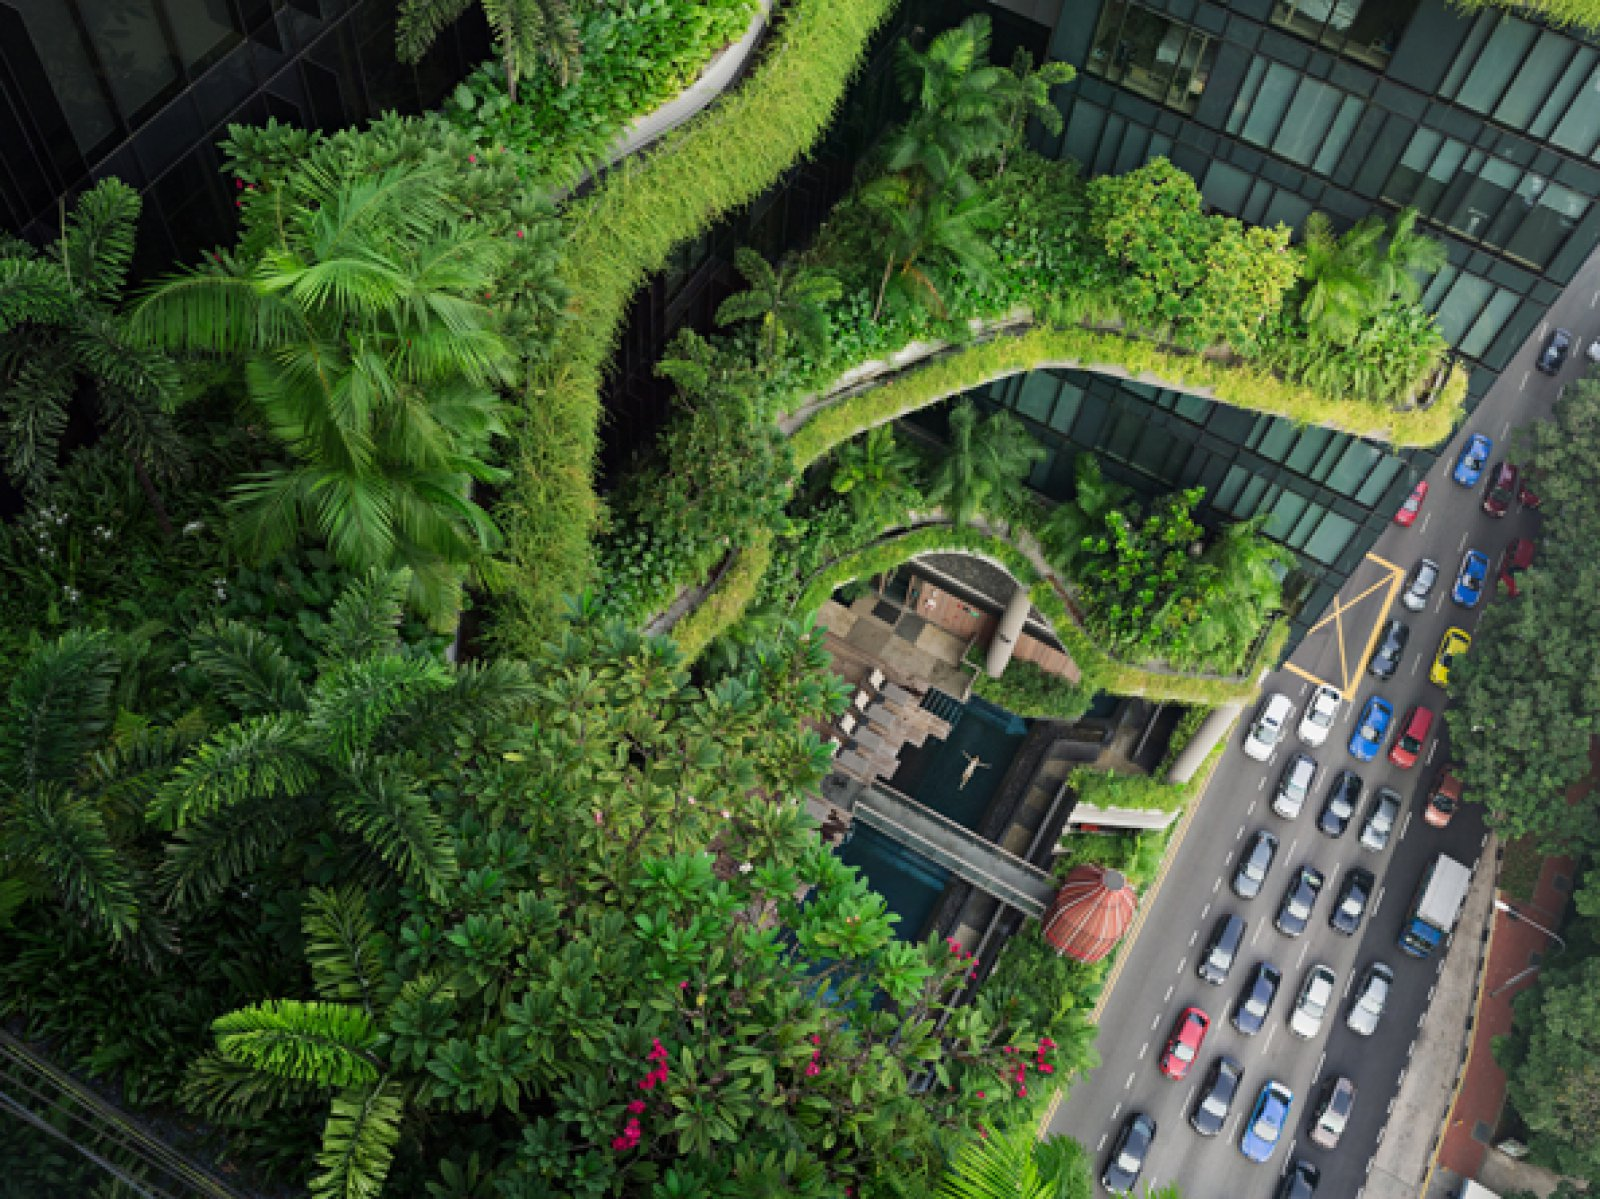 Esme zwemmend, Parkroyal on Pickering, Singapore © Lucas Foglia / Courtesy of Michael Hoppen Gallery